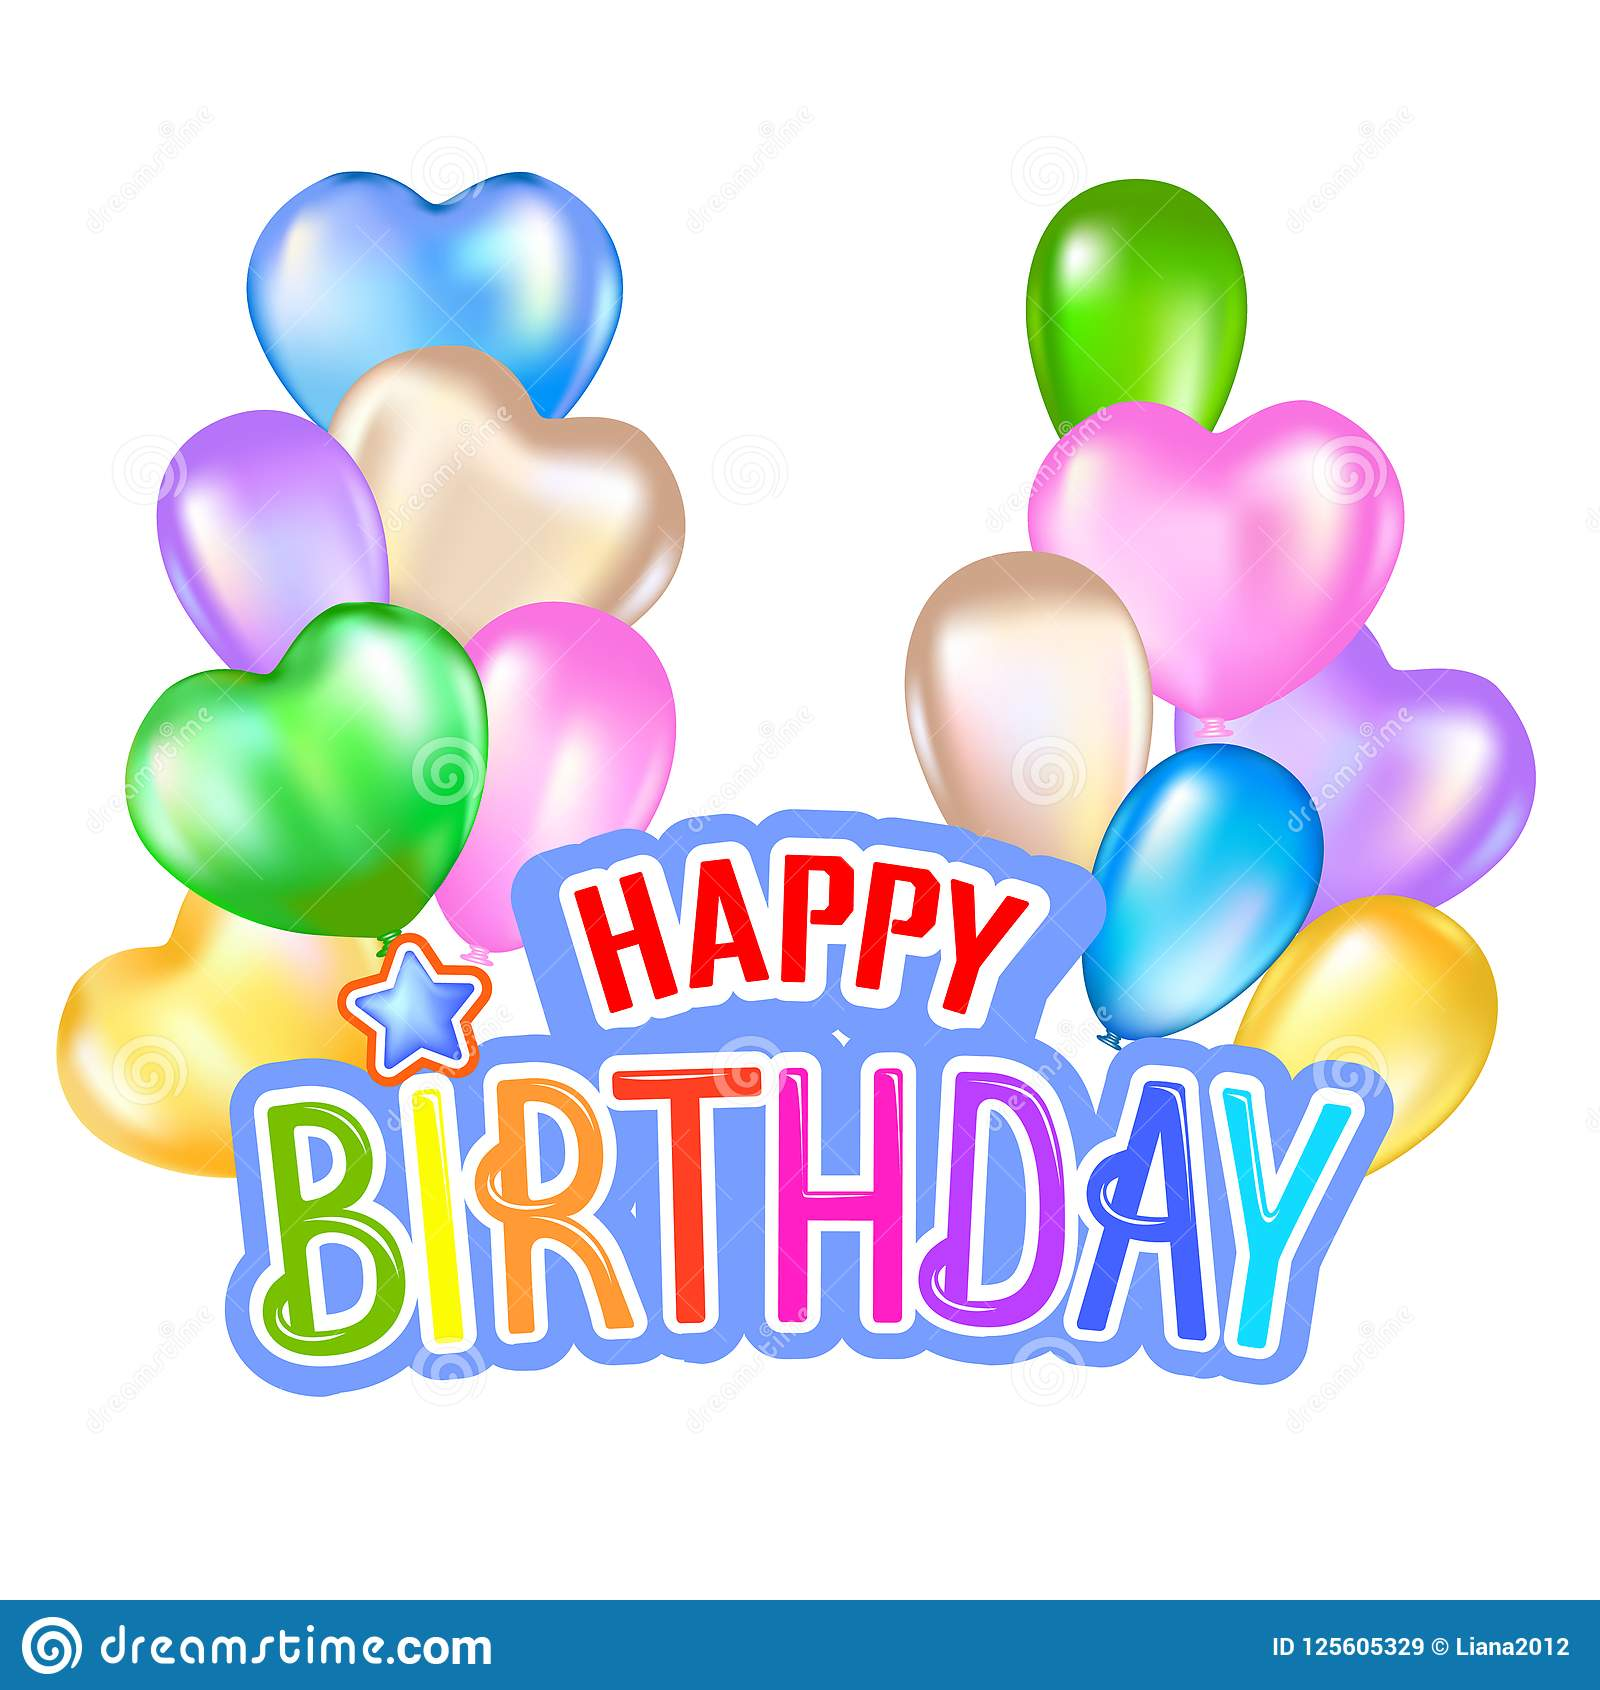 Happy birthday greeting card with colorful design